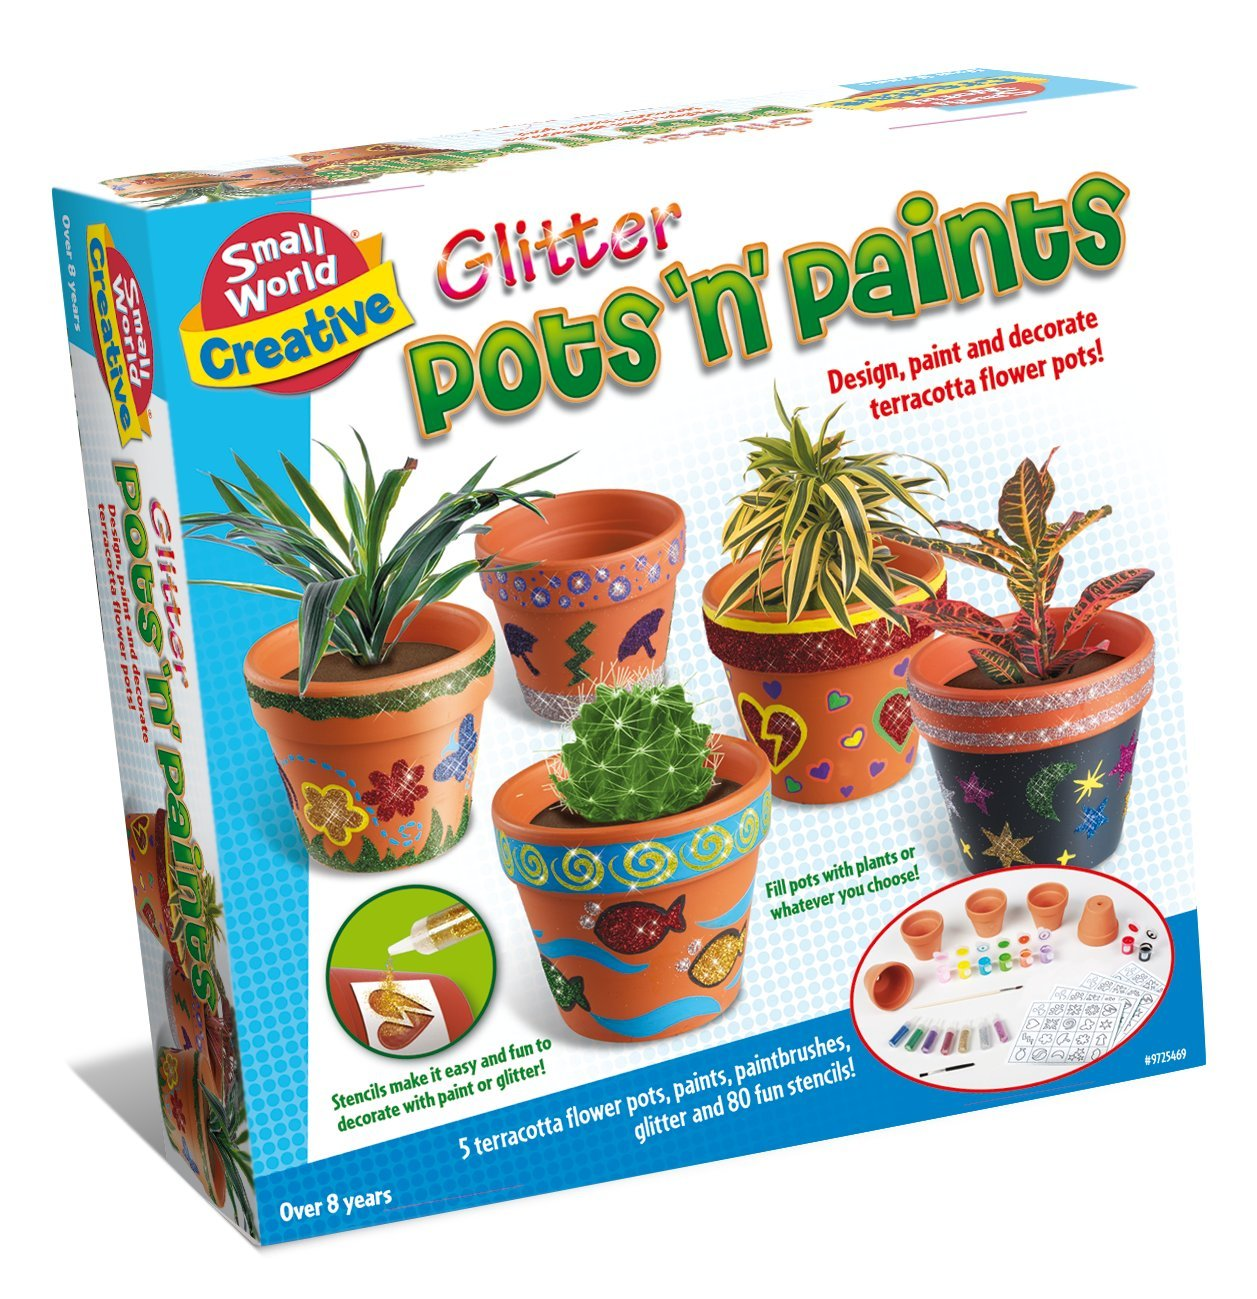 Small World Toys Creative Glitter Pots 'N' Paints Craft Kit